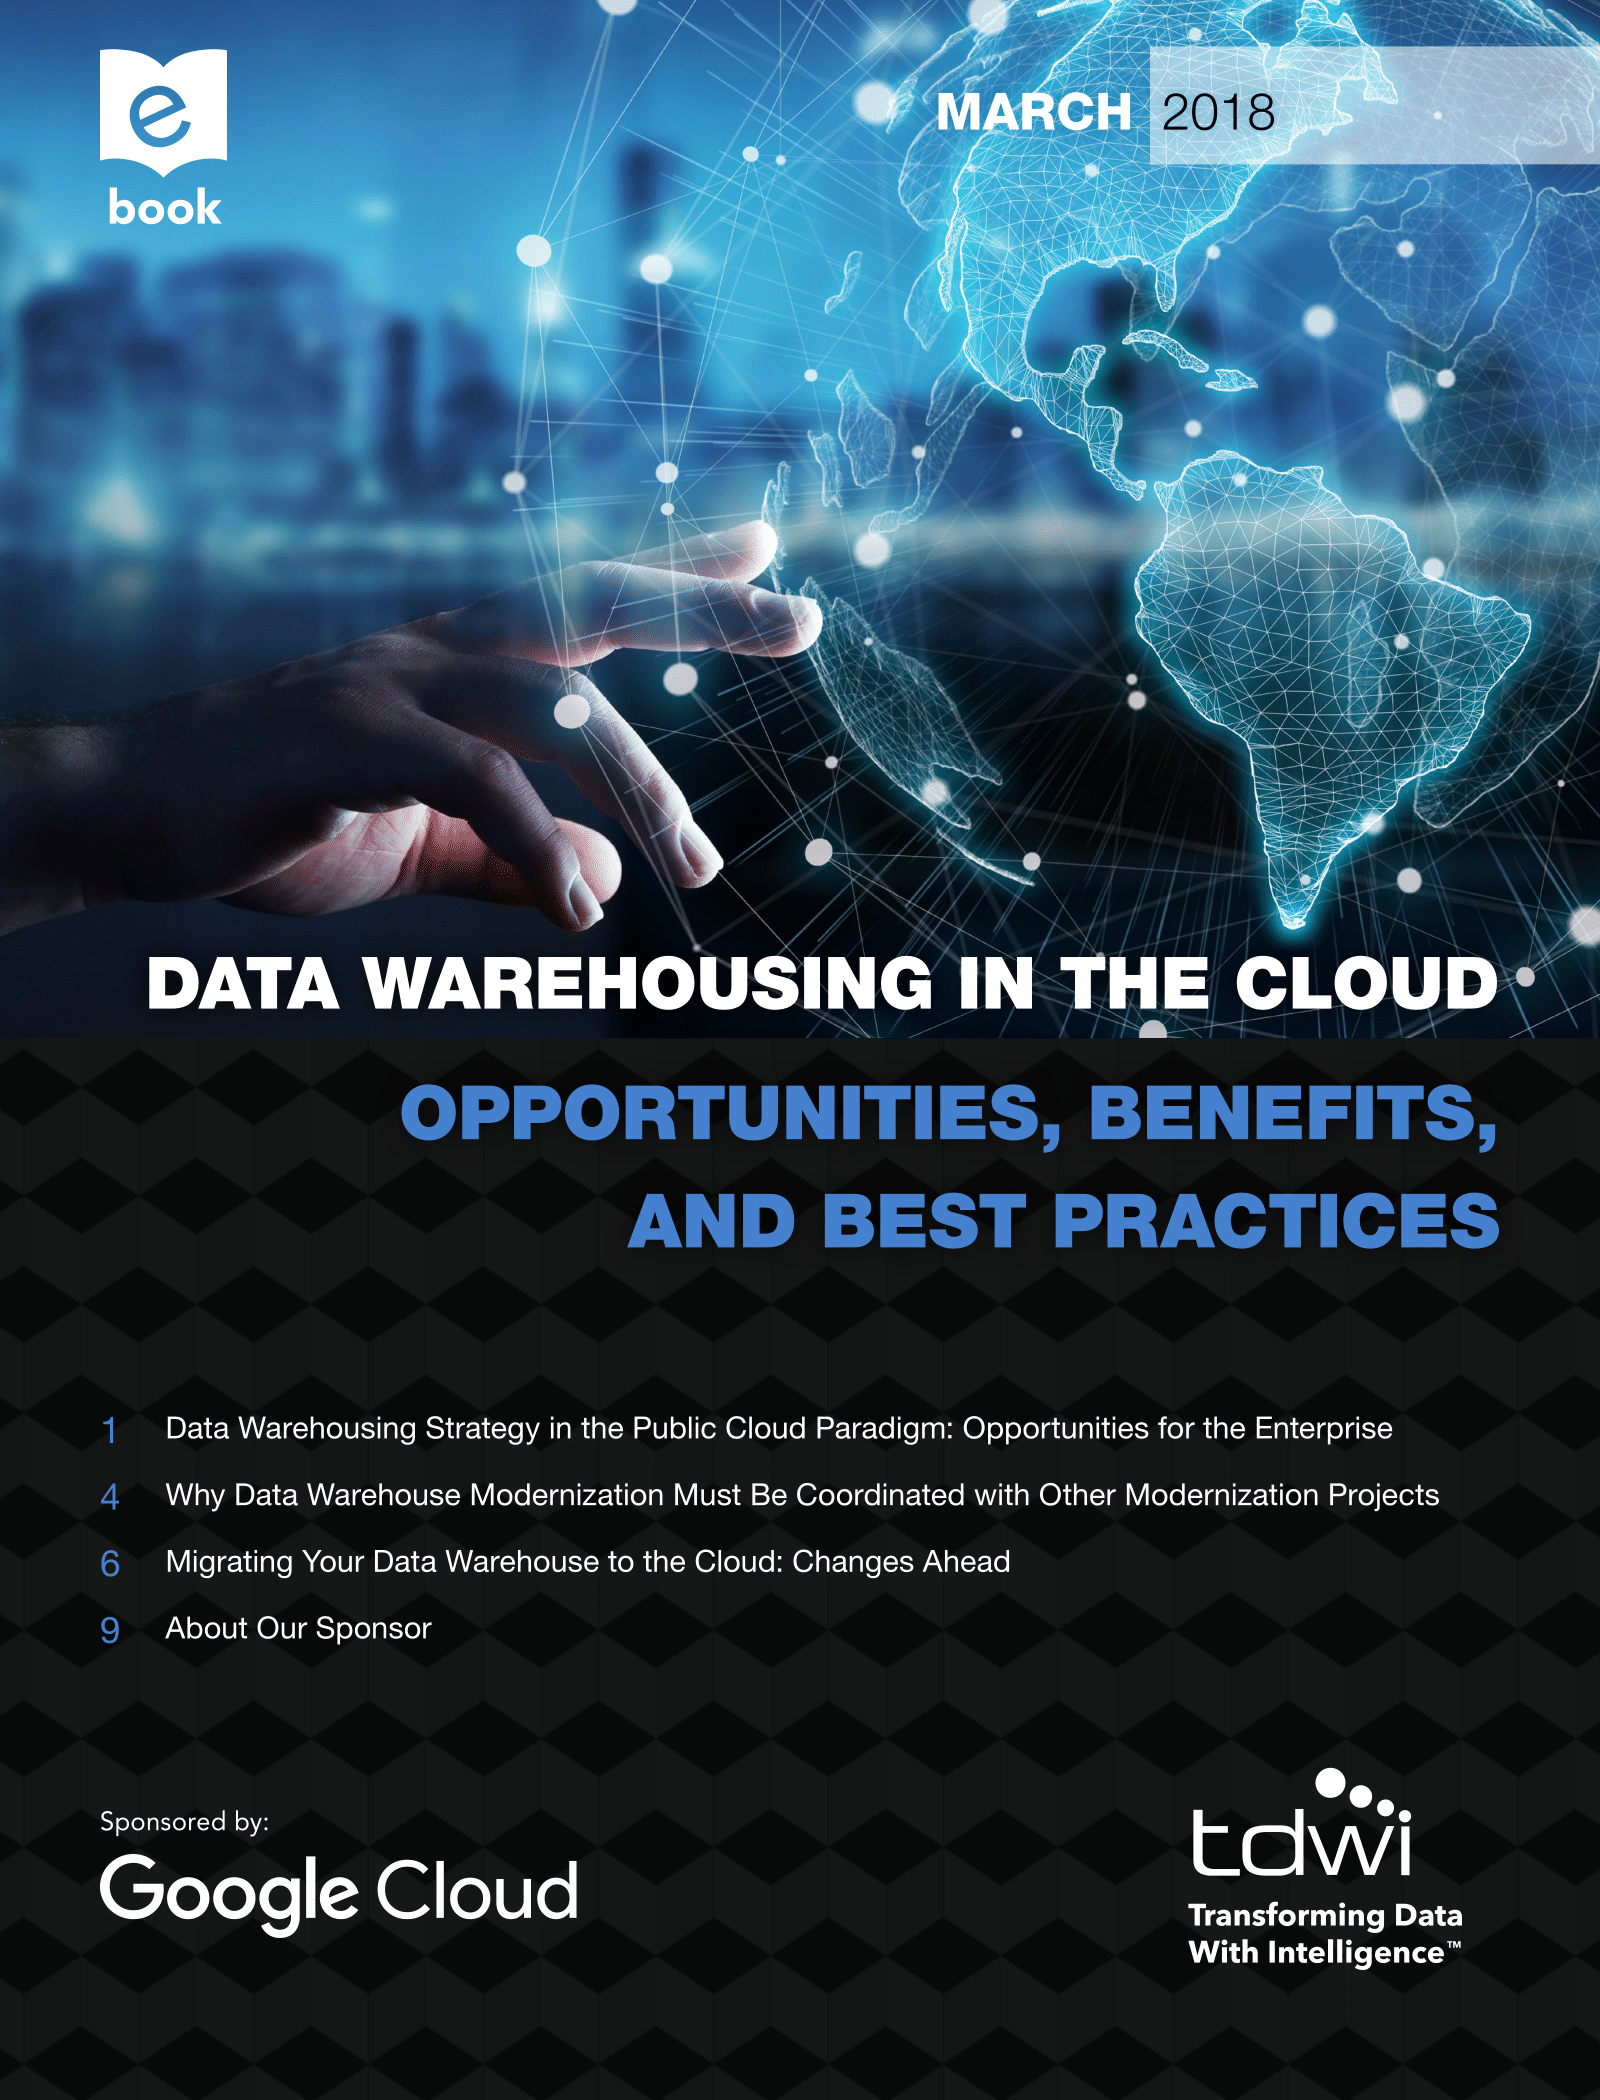 TDWI Data Warehousing in the Cloud White Paper-01.png